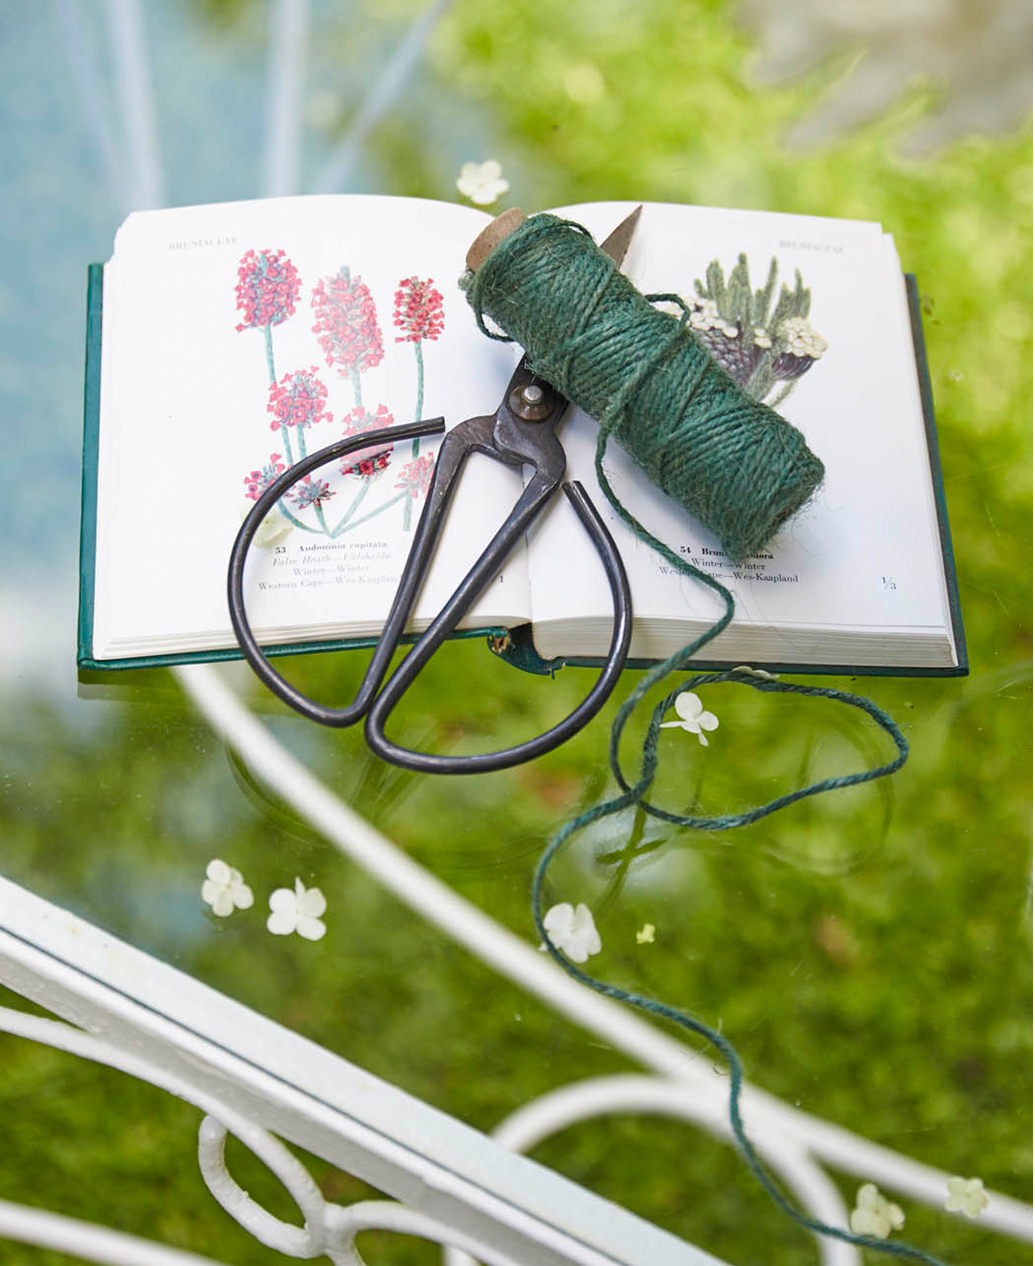 A pair of gardening scissors sits on top of a book of flowers.